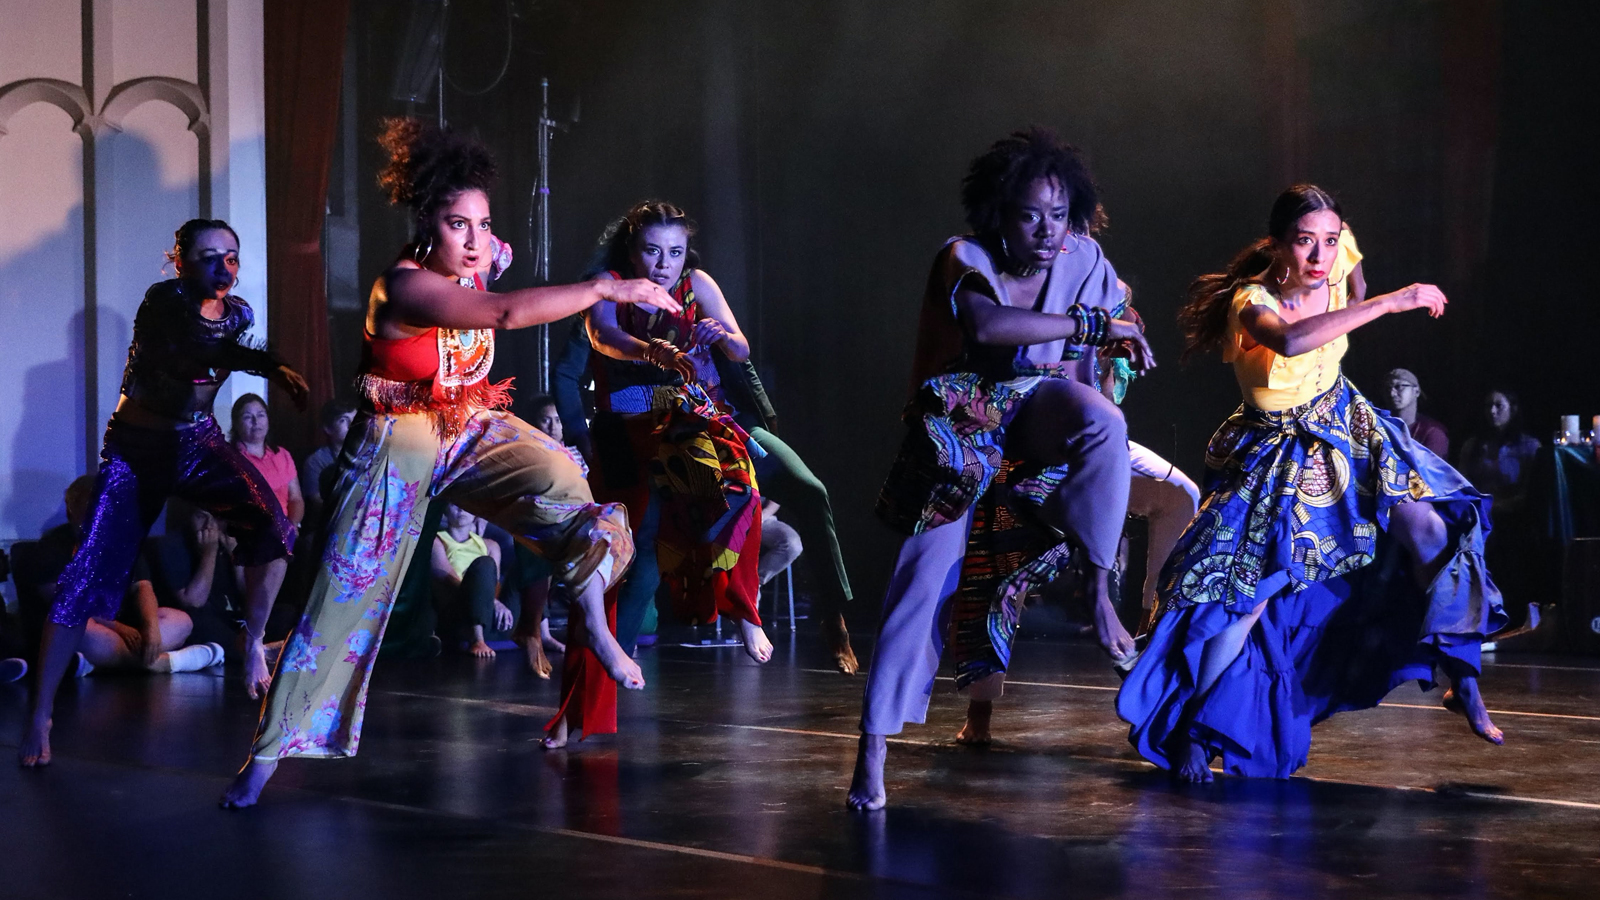 Group of six dancers barefoot wearing colorful loose clothing on a dancefloor leaning forward, left legs lifted with right arms extended across their bodies.